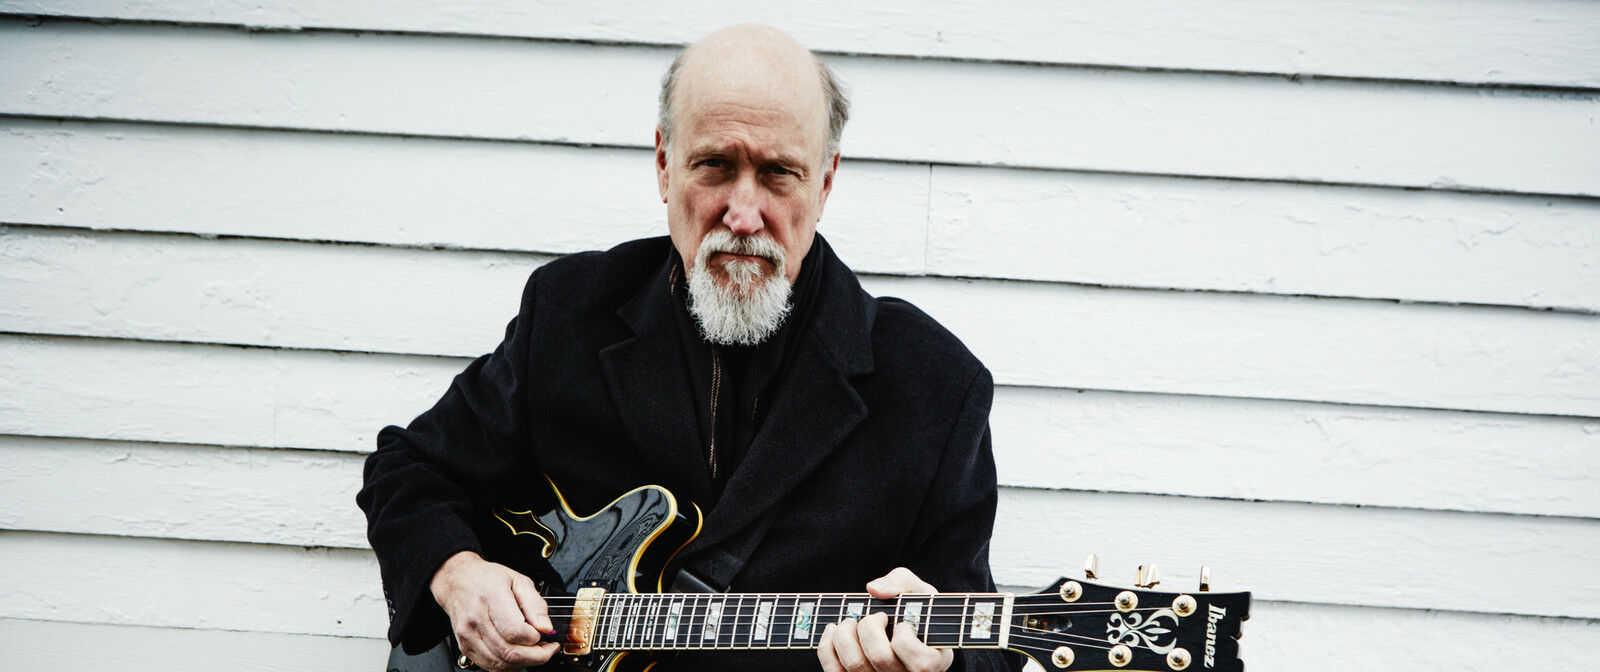 John Scofield's Combo 66 Featuring Gerald Clayton, Vicente Archer, and Bill Stewart